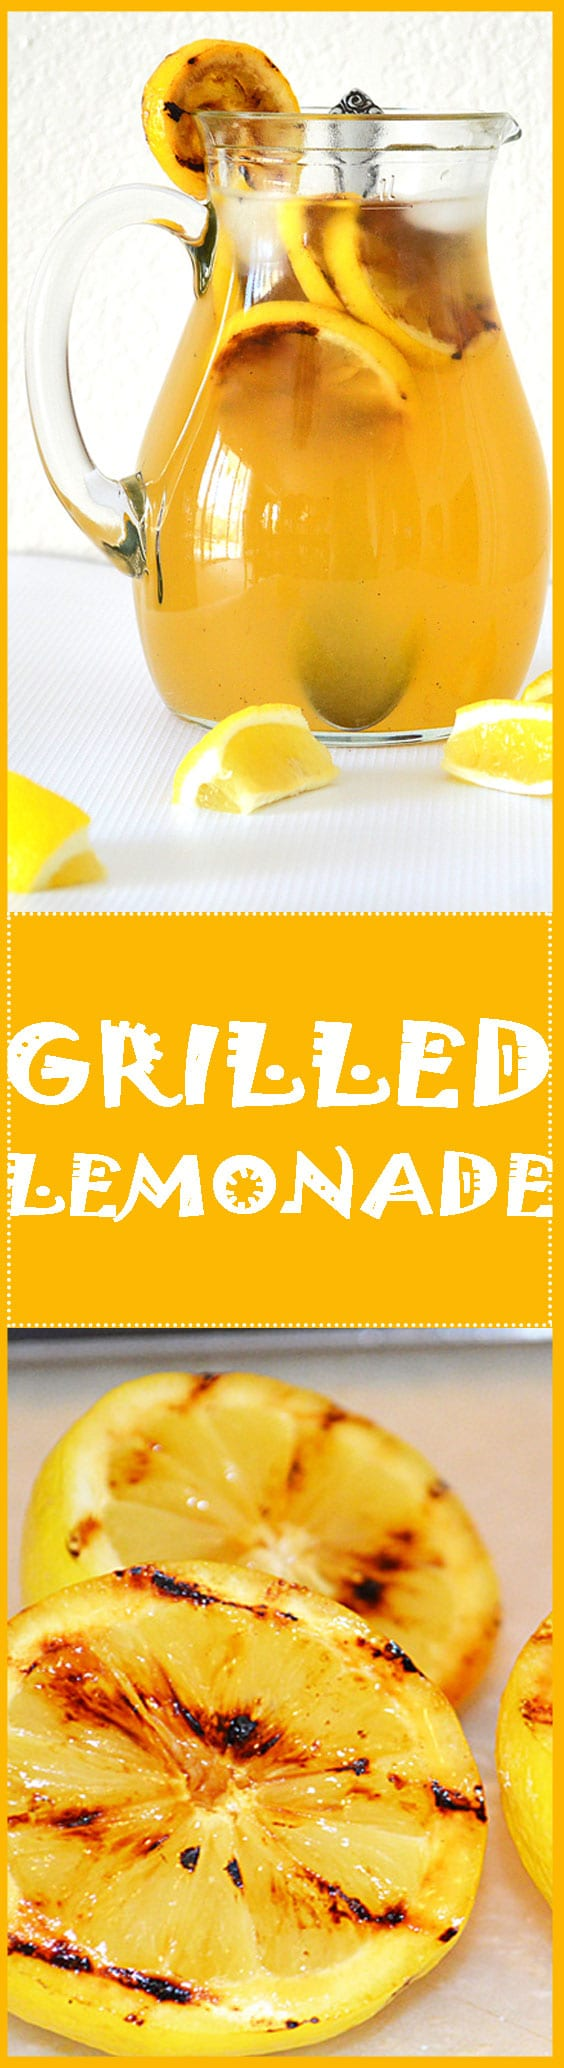 Grilled Lemonade - TheVegLife